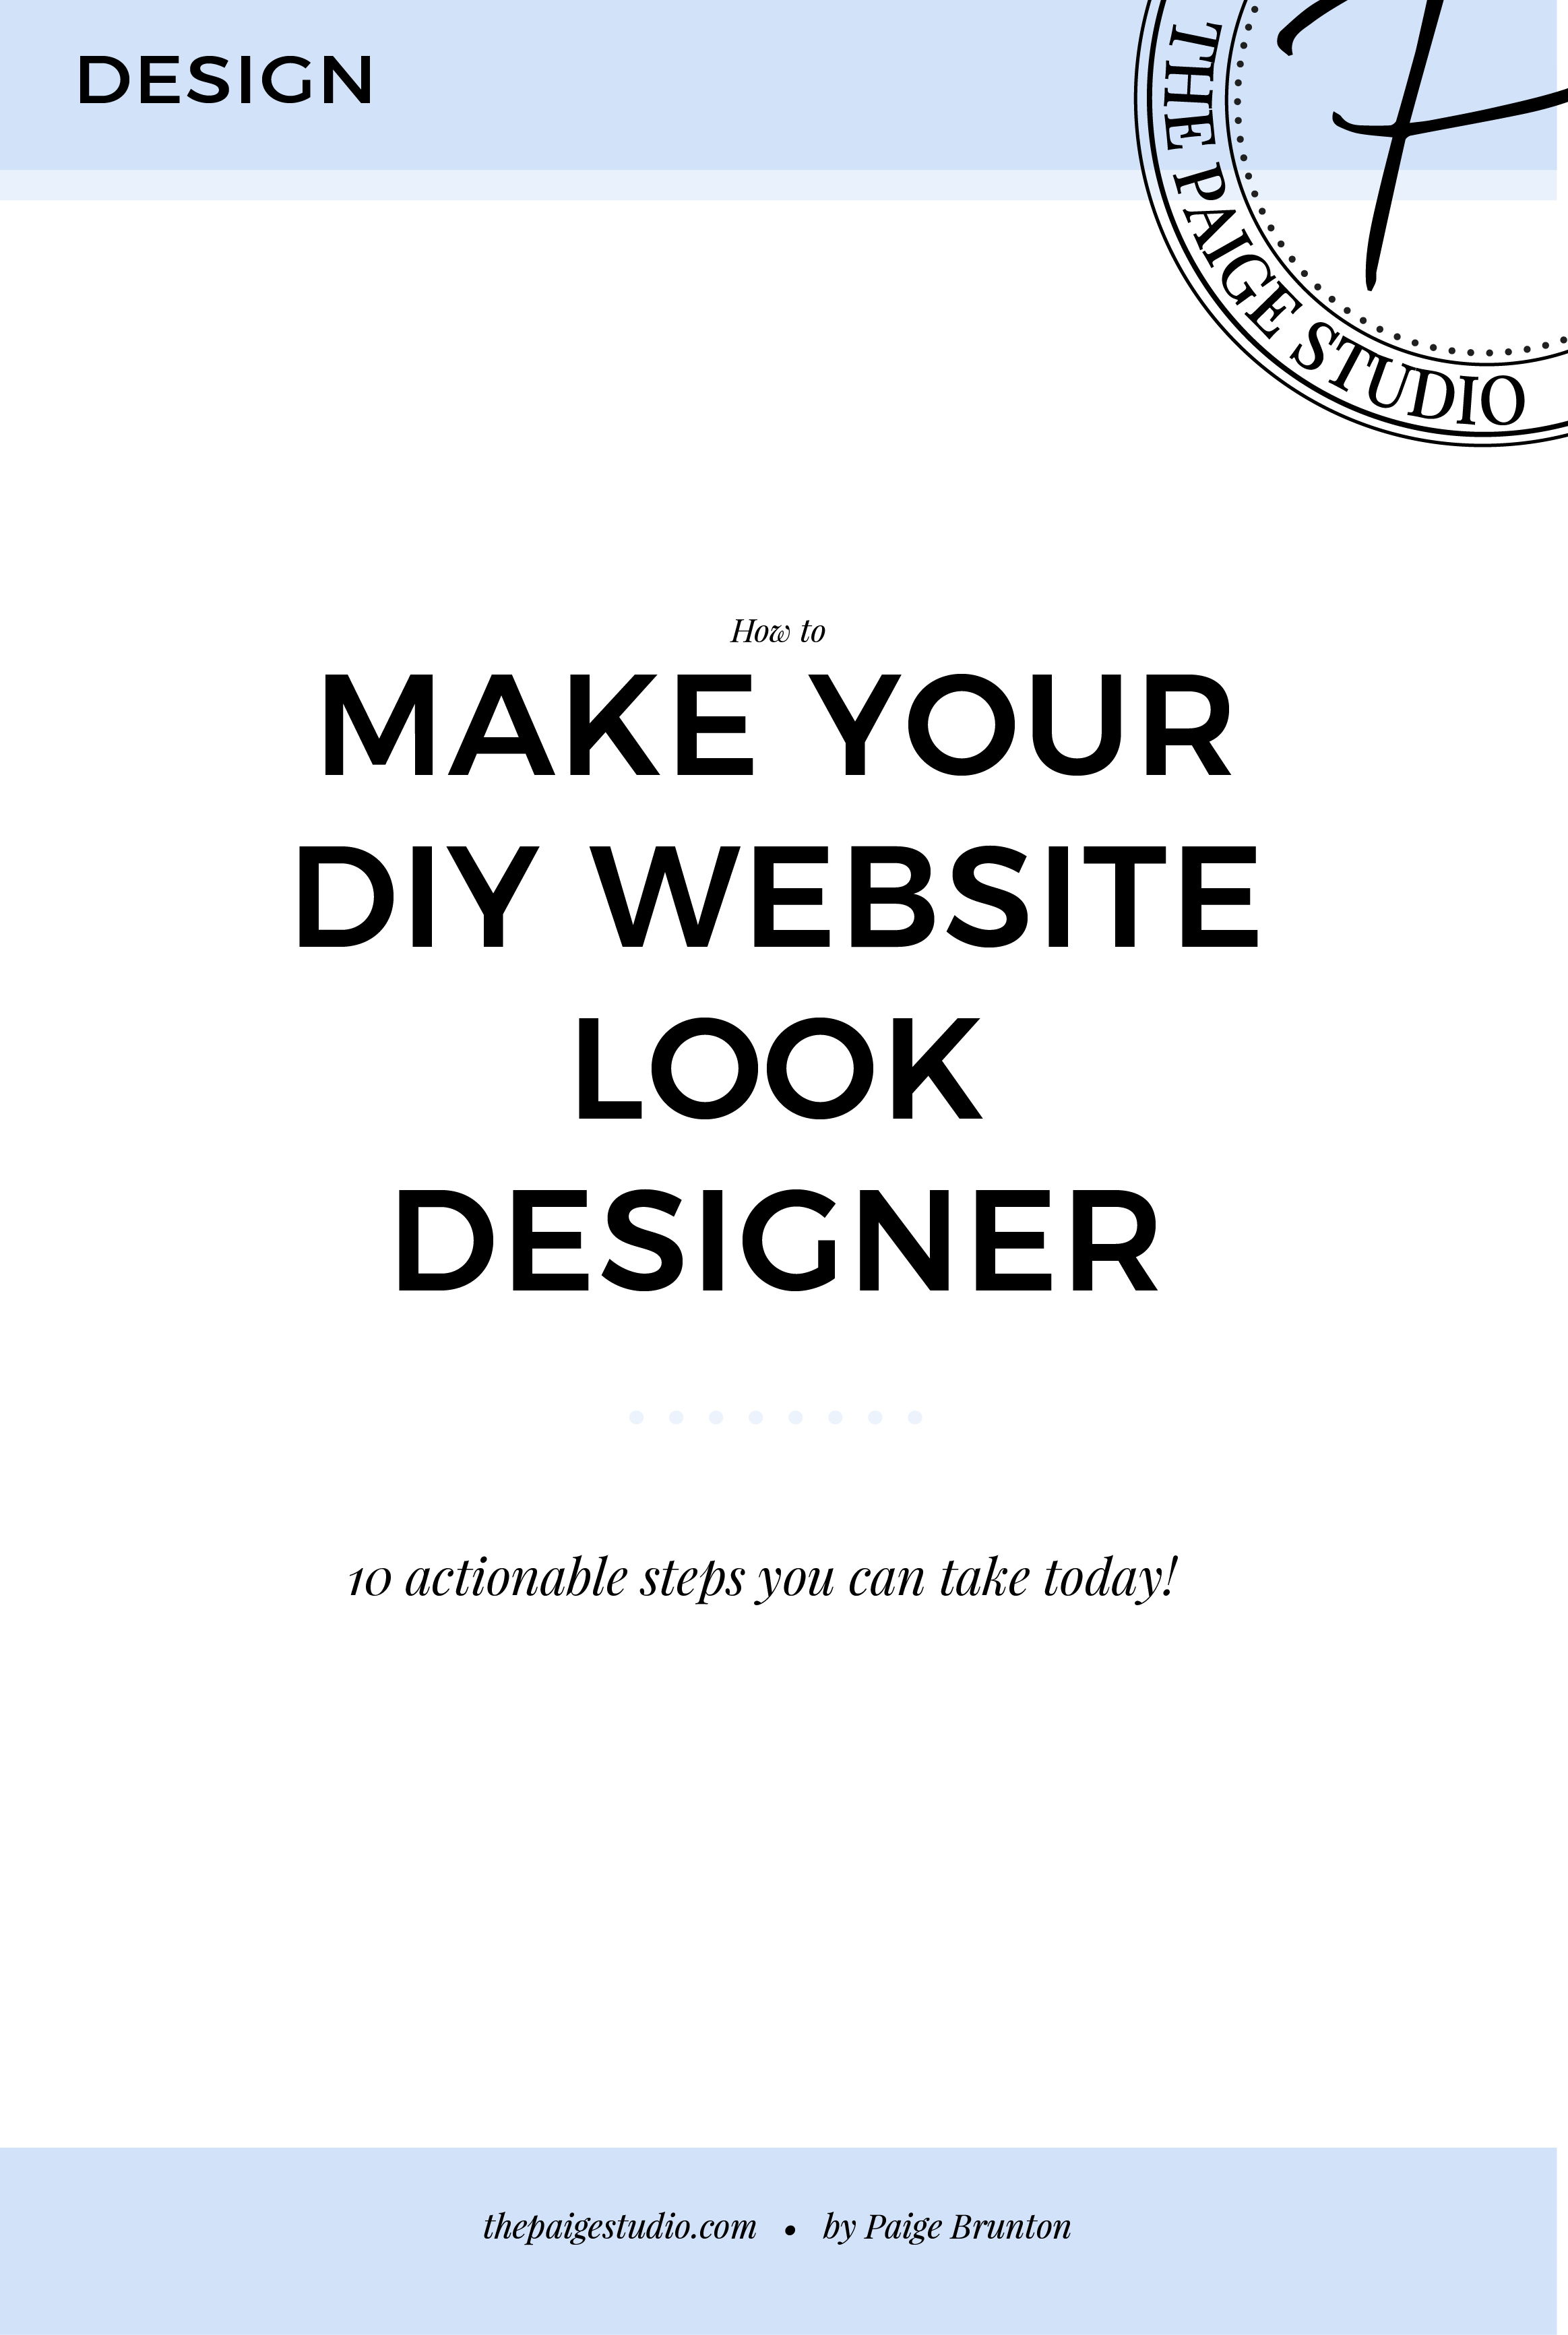 These 10 easy steps will help you think like a designer and streamline your website to look like it was designed by a pro